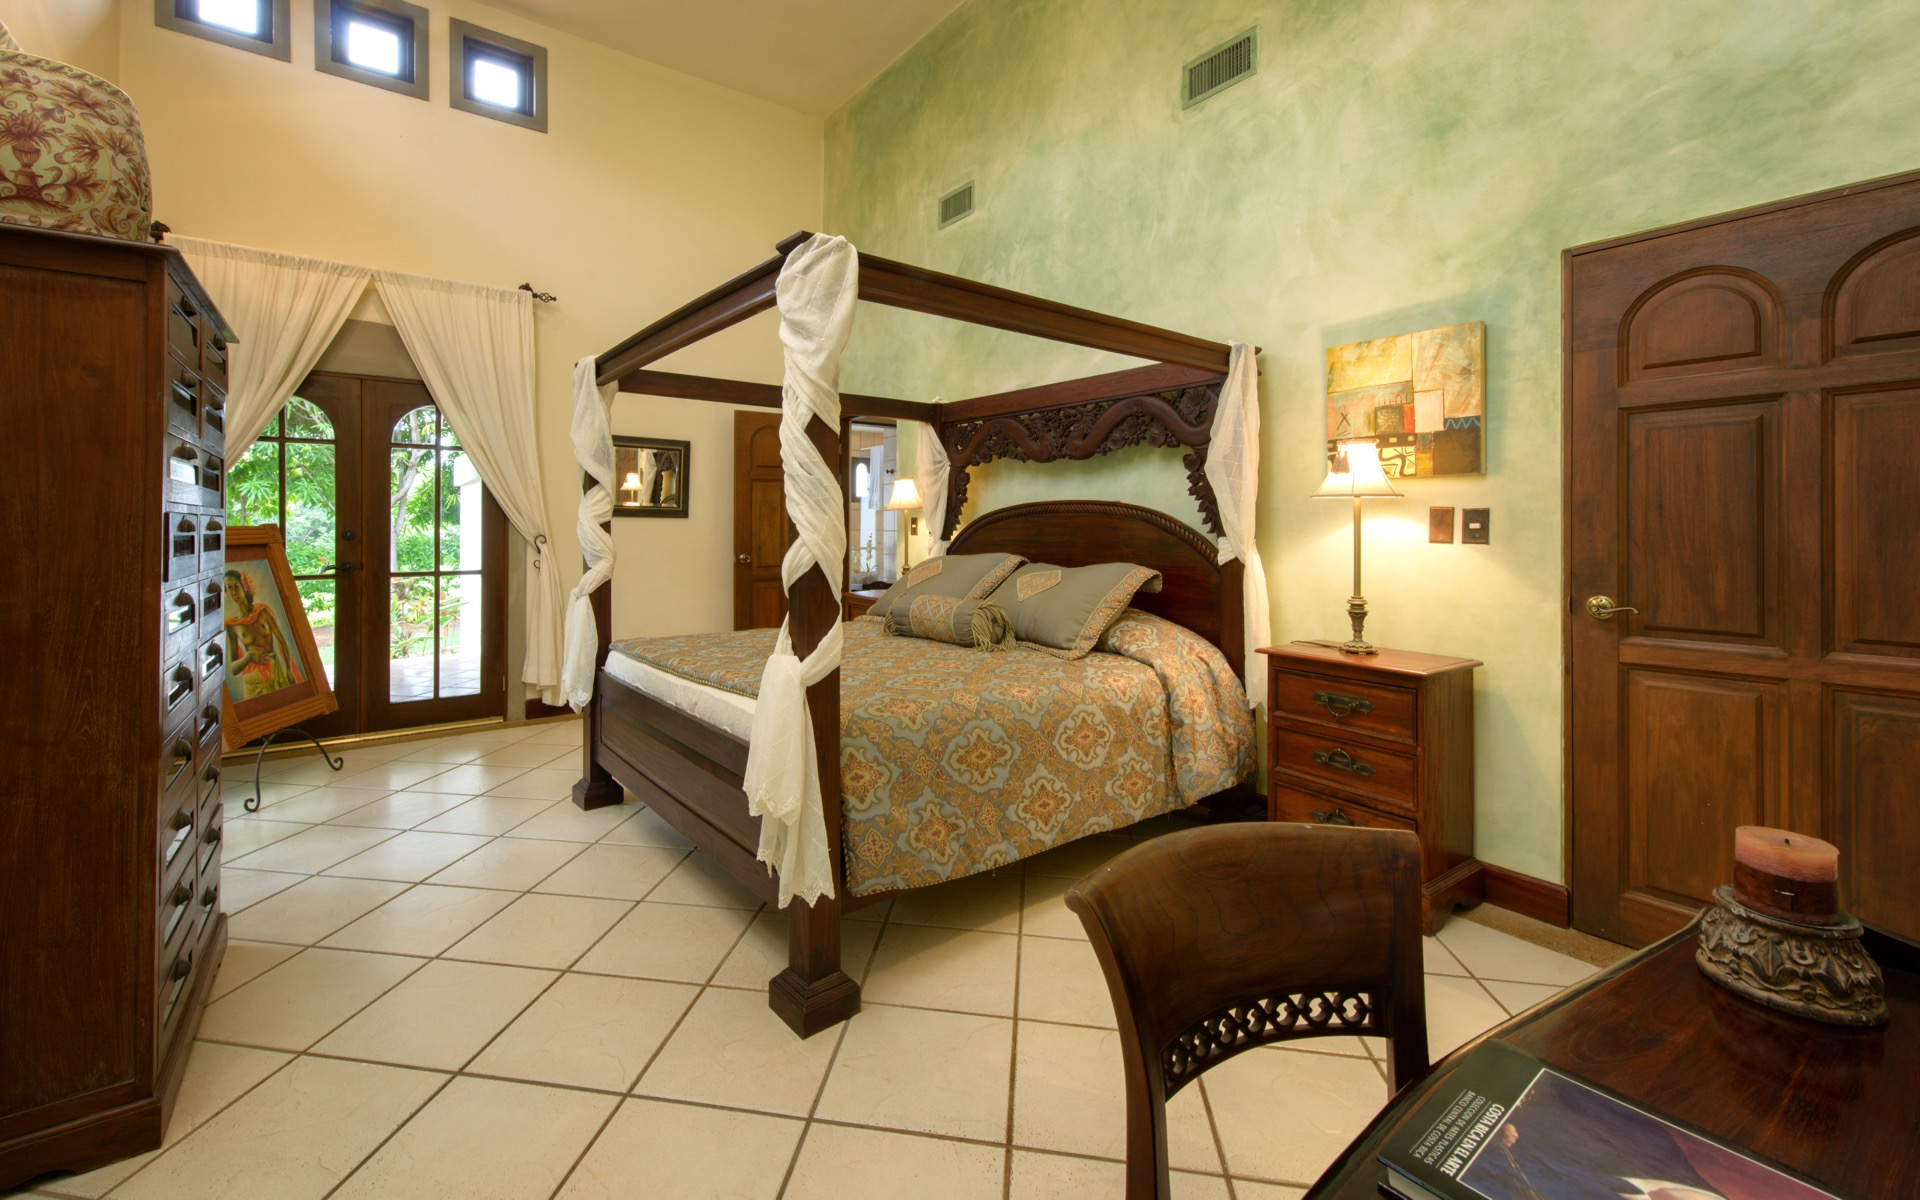 High ceilings and comfortable beds